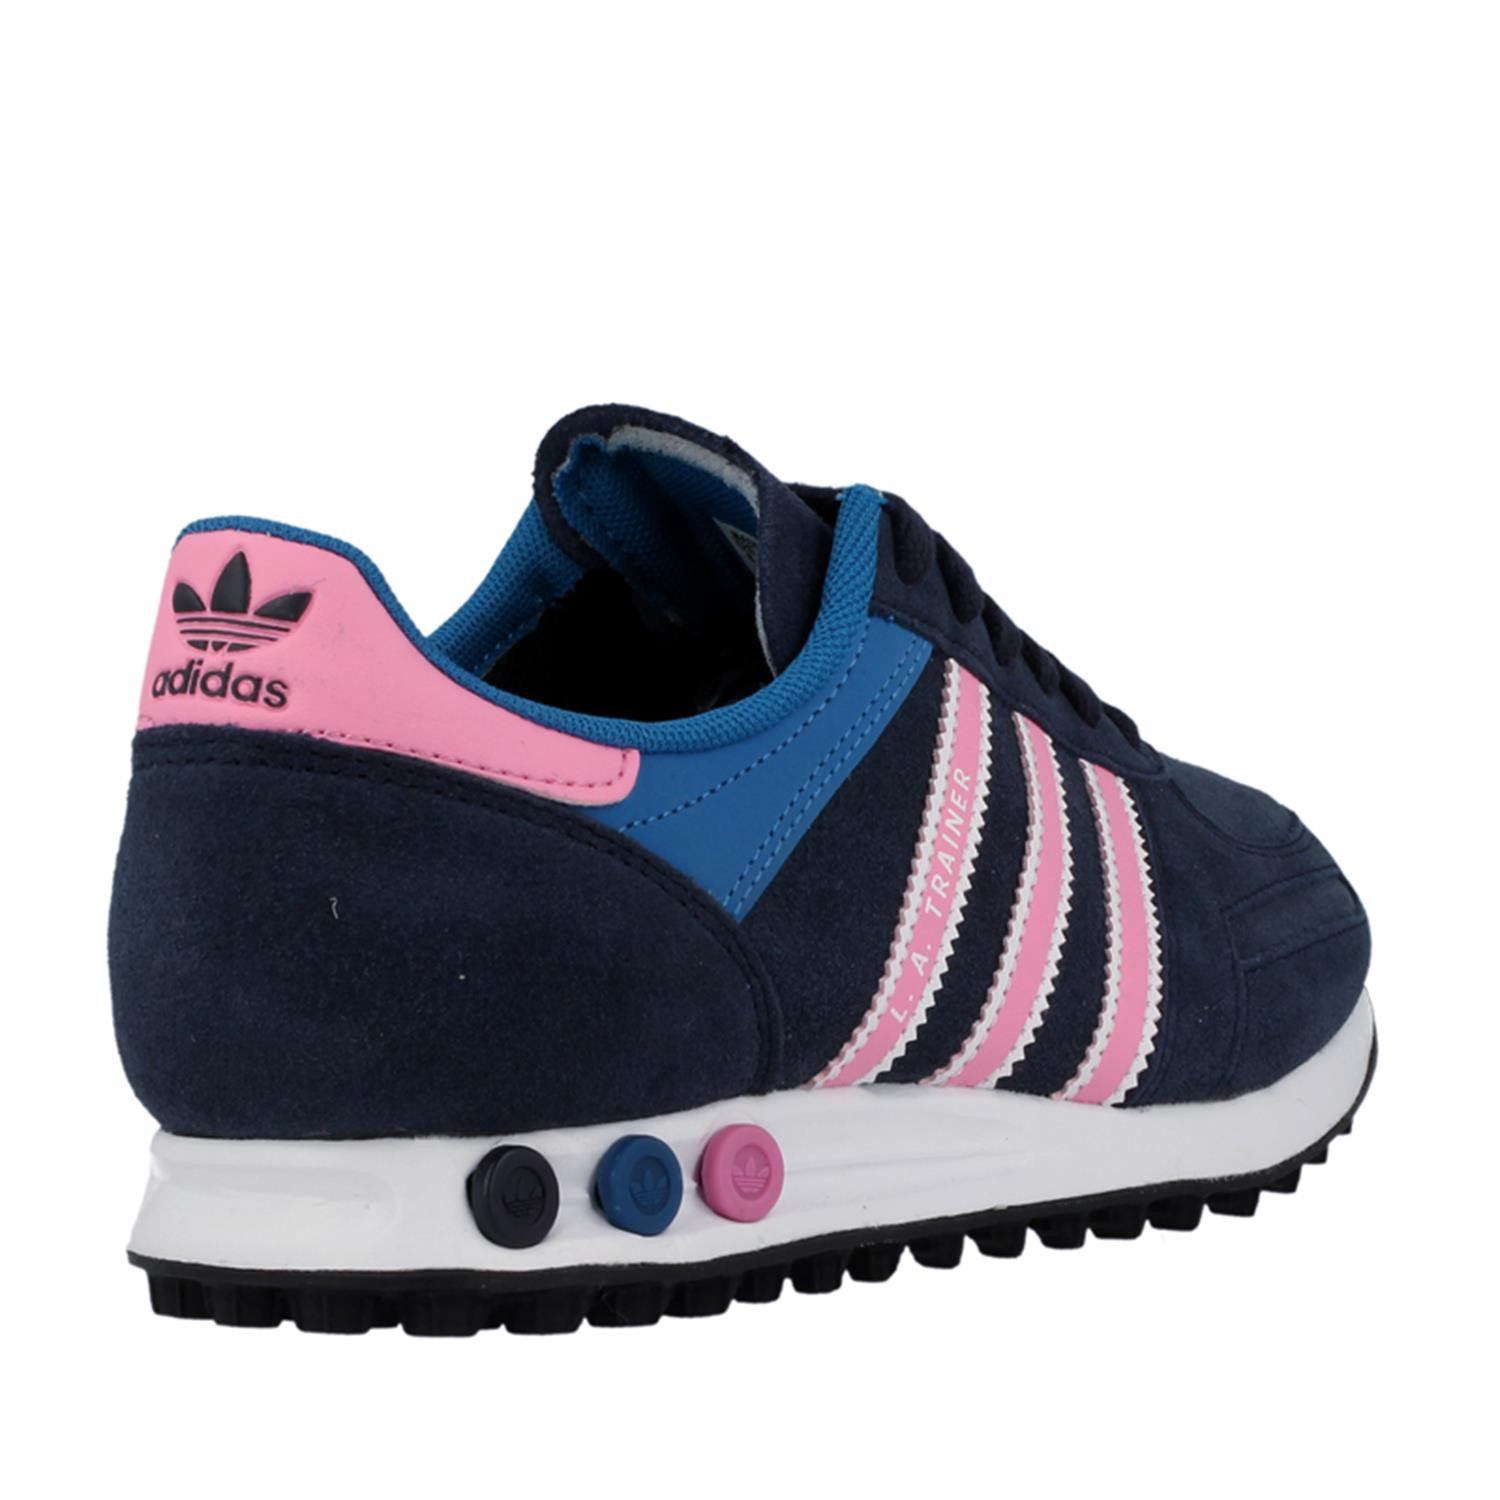 adidas sneaker damen blau rosa kinderhaus. Black Bedroom Furniture Sets. Home Design Ideas